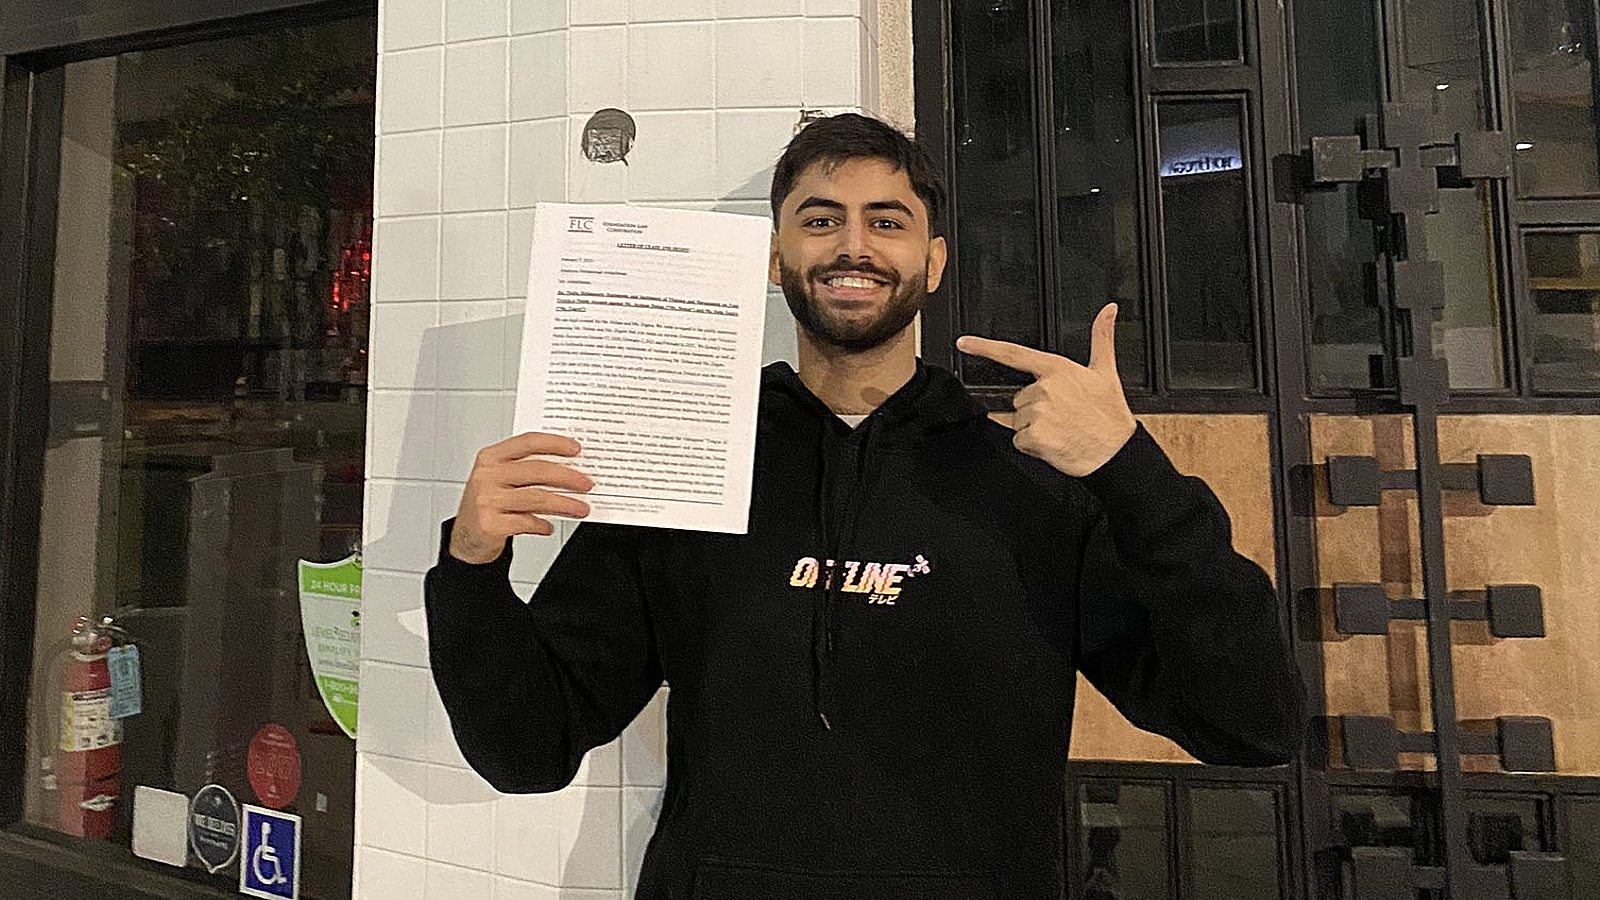 Yassuo fake cease and desist letter from bella and kat evolved